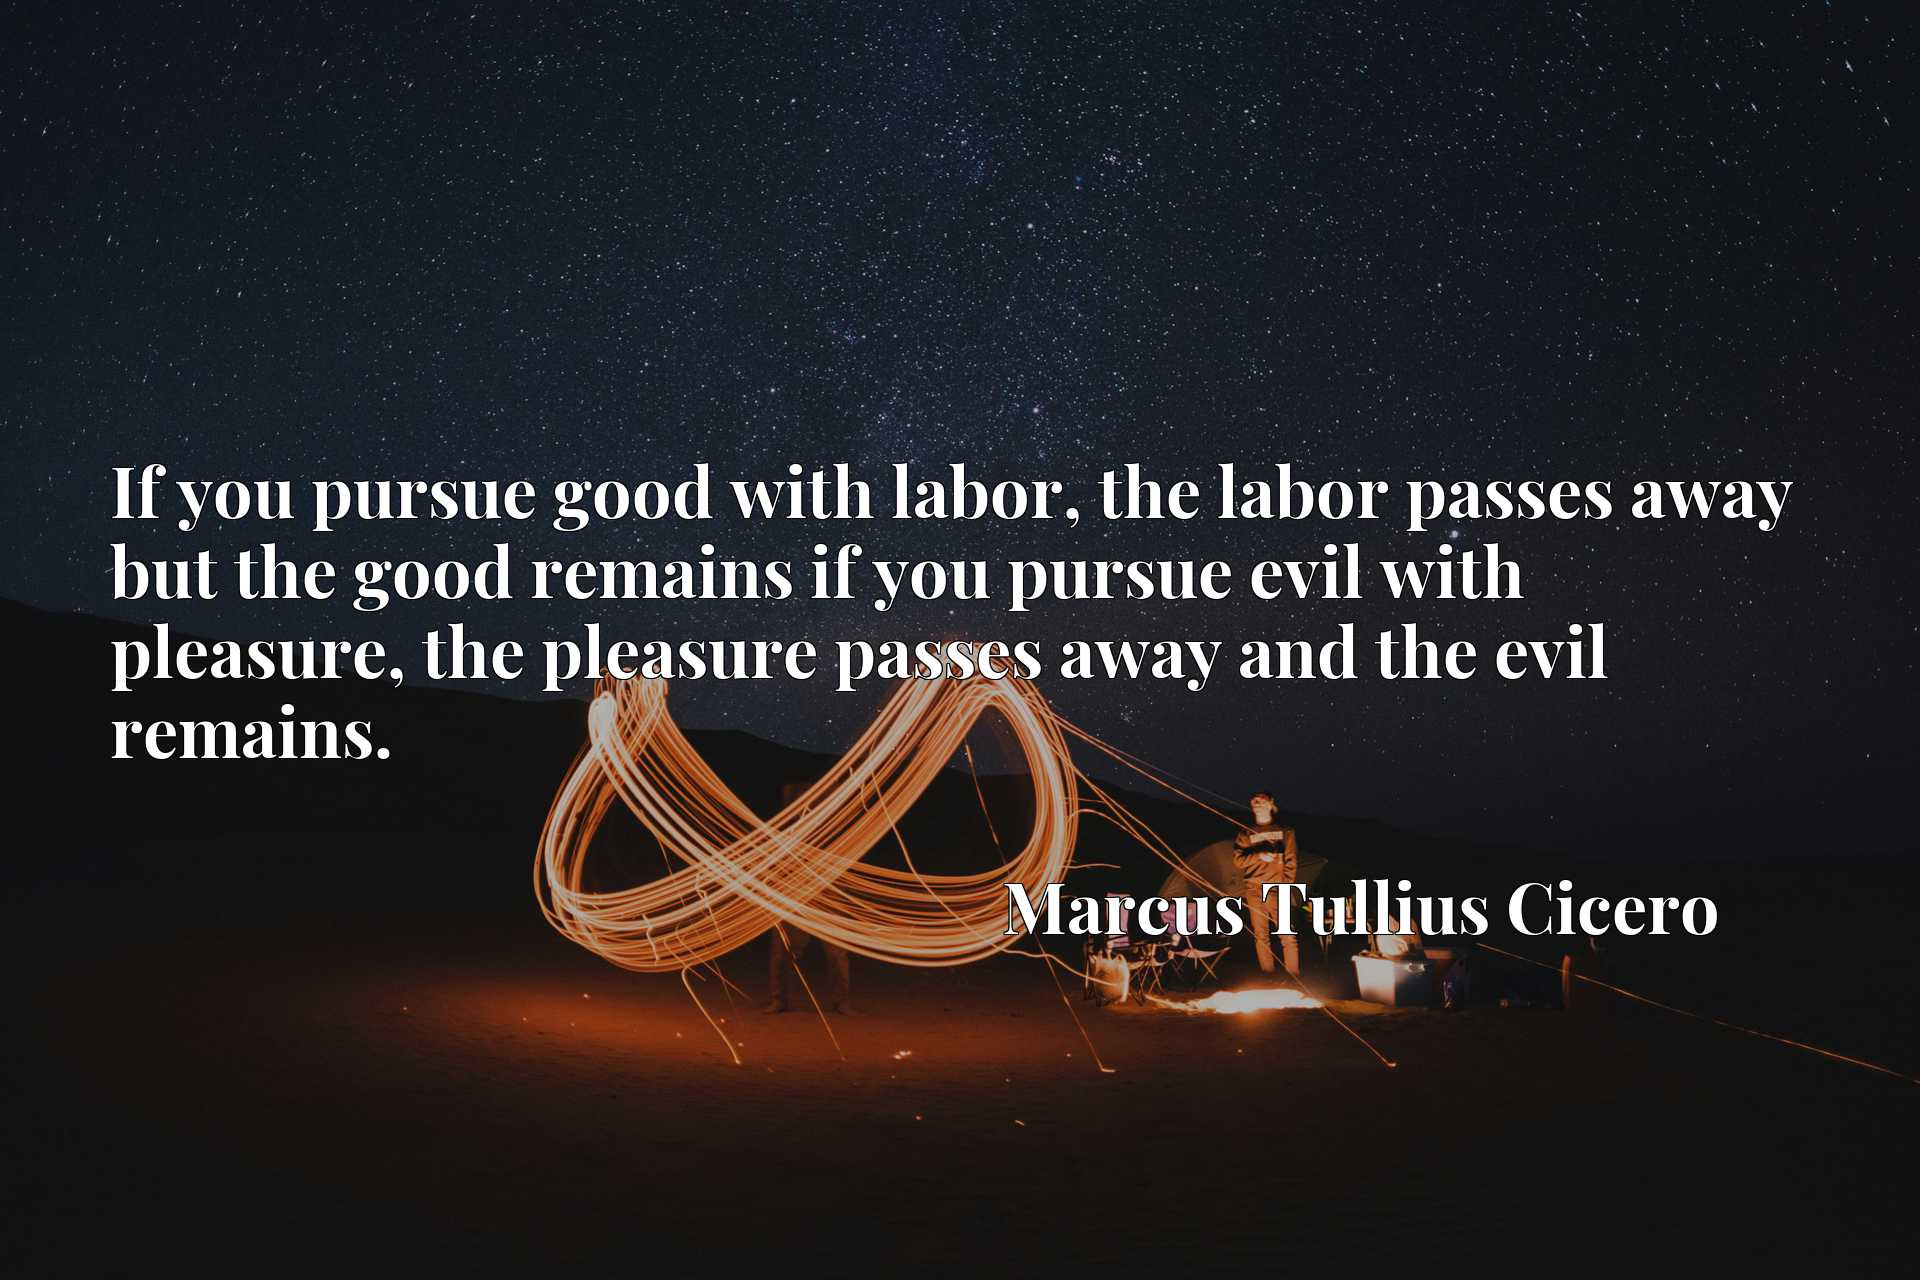 If you pursue good with labor, the labor passes away but the good remains if you pursue evil with pleasure, the pleasure passes away and the evil remains.